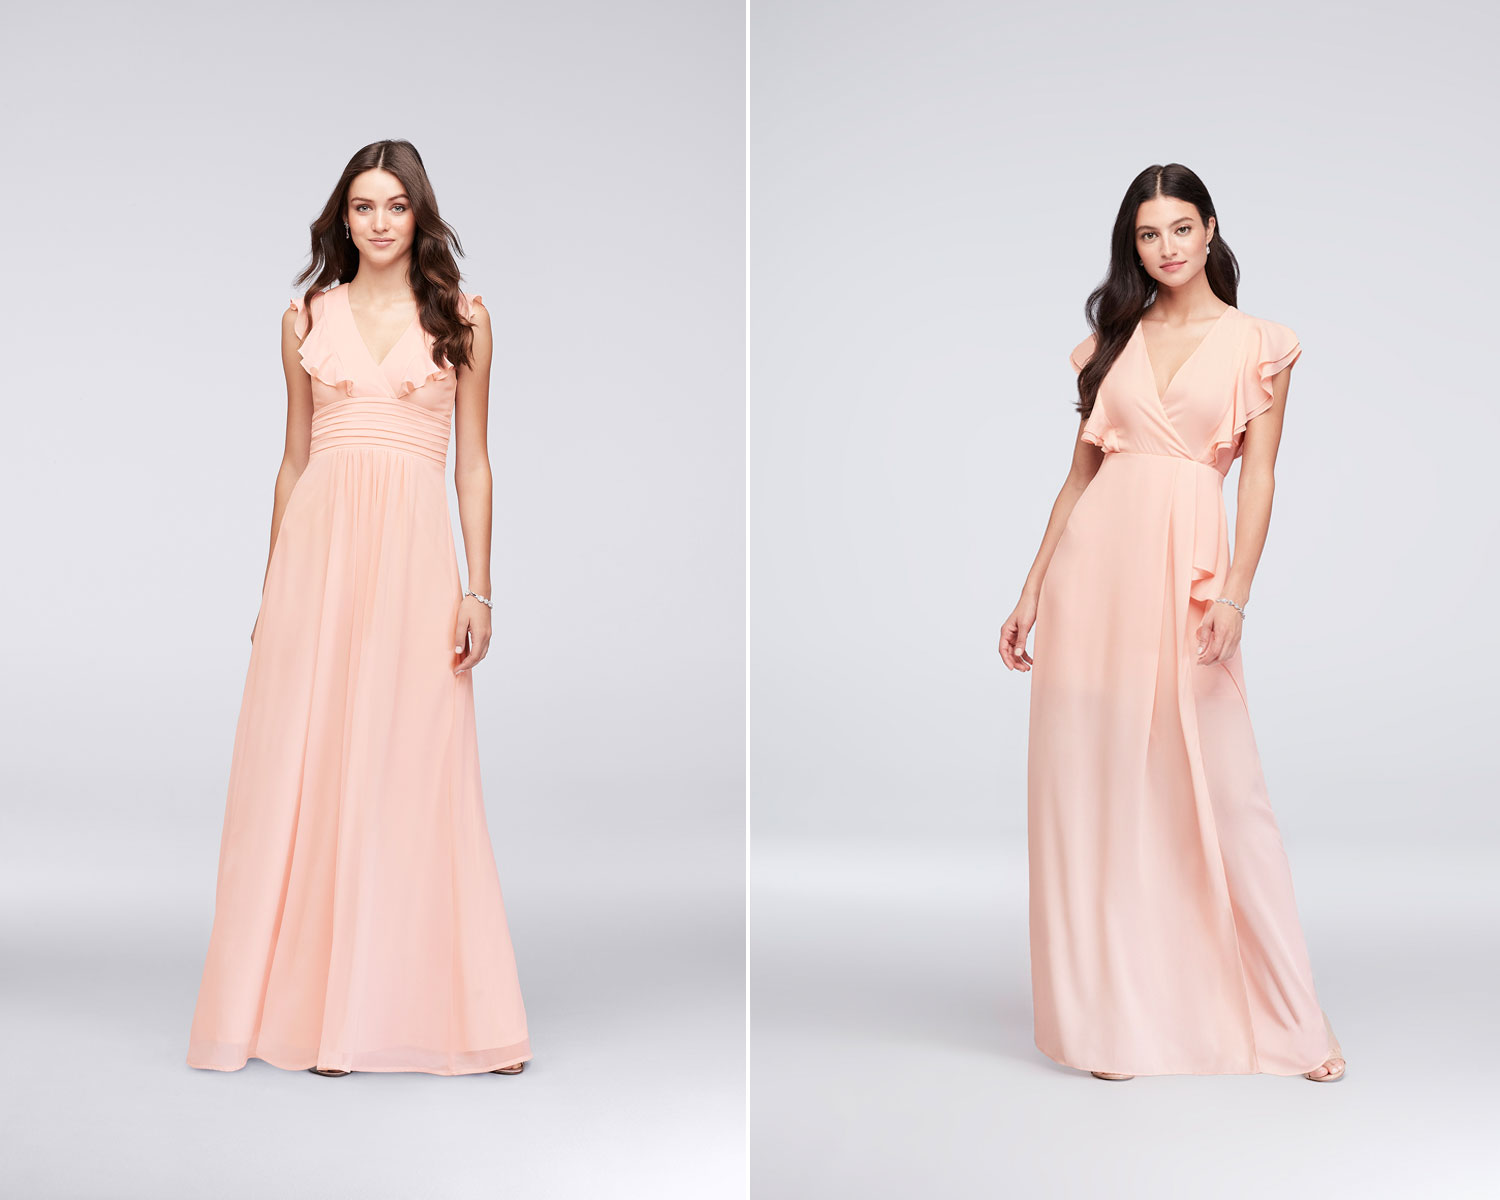 Peach bridesmaid dresses under 100 image collections for Maternity wedding dresses under 100